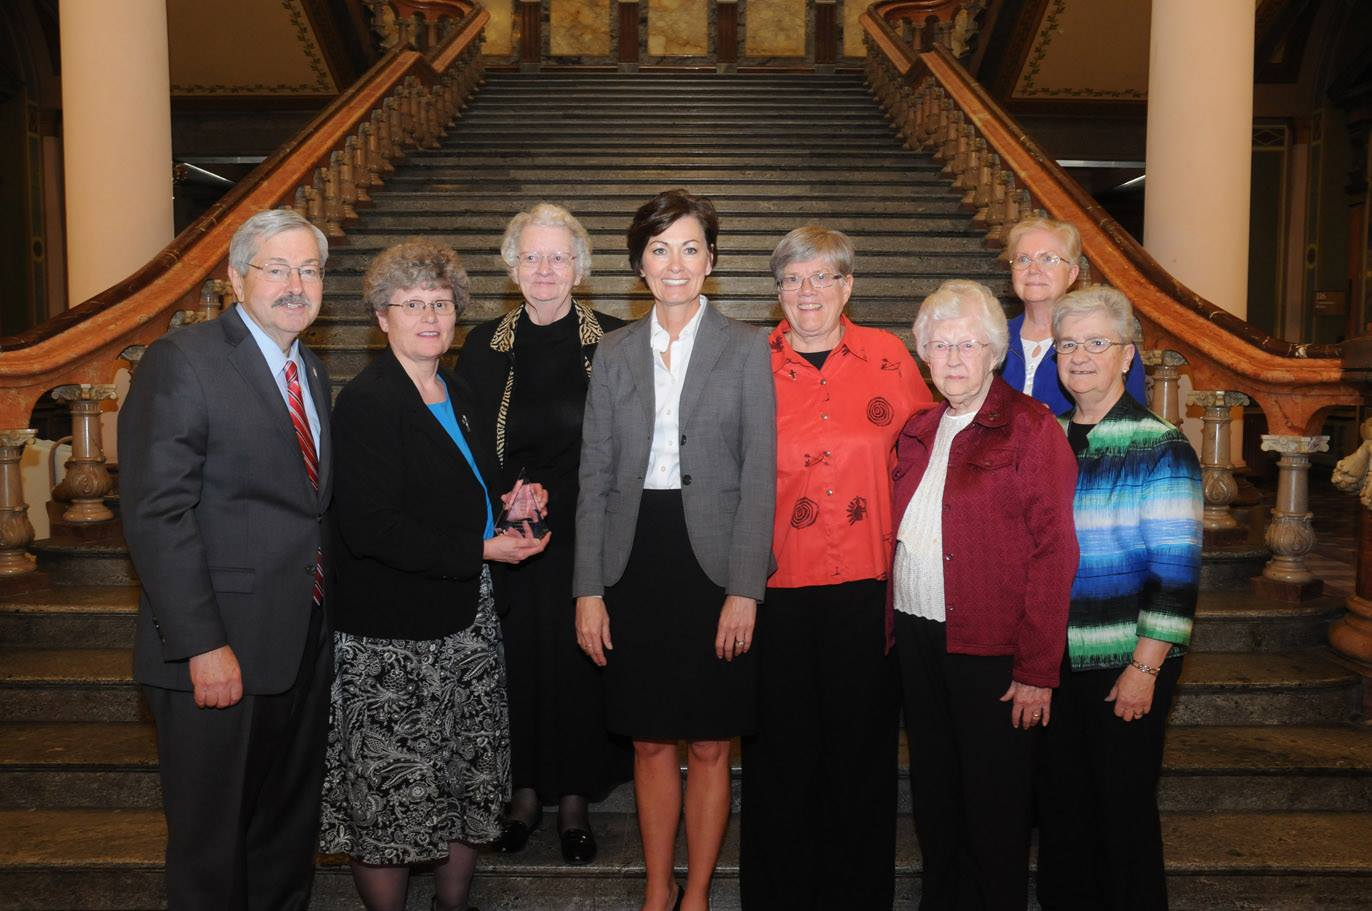 Sisters of Mercy representatives stand with Governor Terry Branstad and Lieutenant Governor Kim Reynolds following the group's induction into the Iowa Volunteer Hall of Fame.